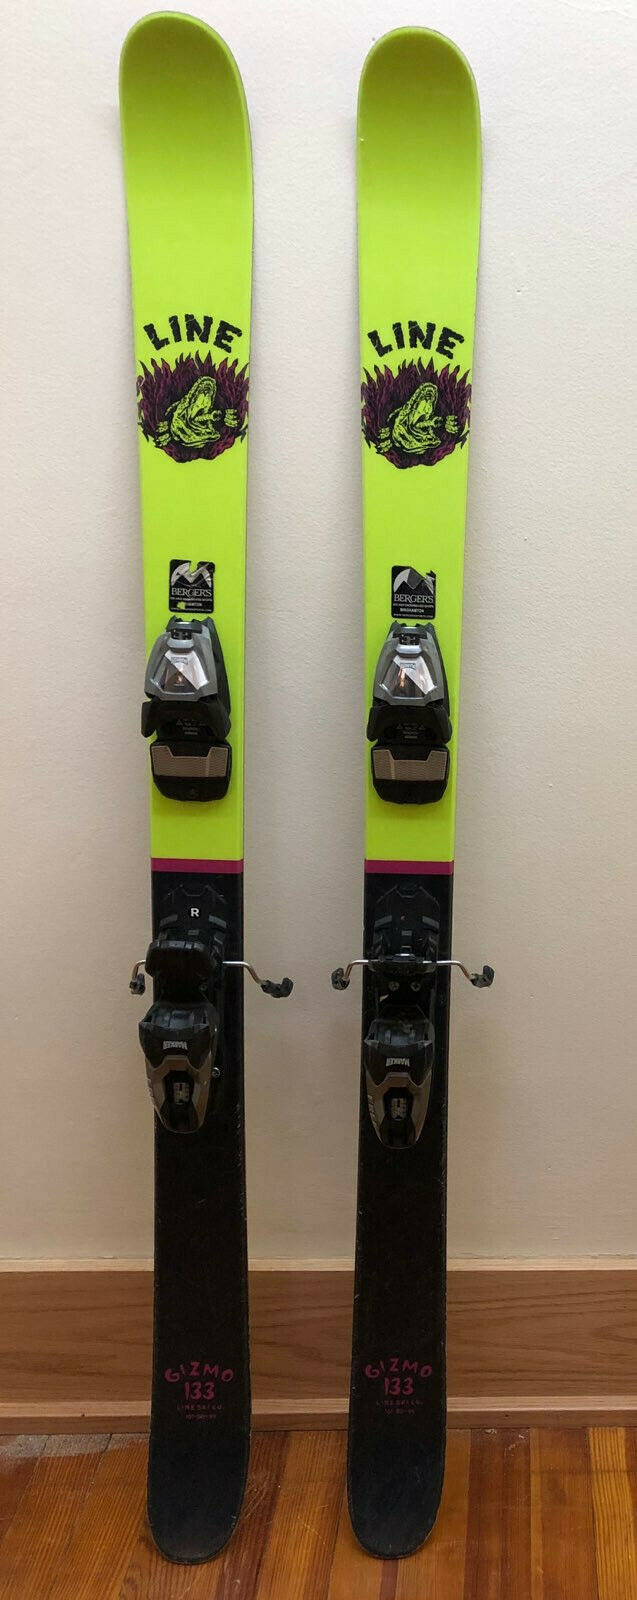 GENTLY USED LINE GIZMO  SKIS SIZE  133  WITH MARKER FREE 8 BINDINGS  high quaity